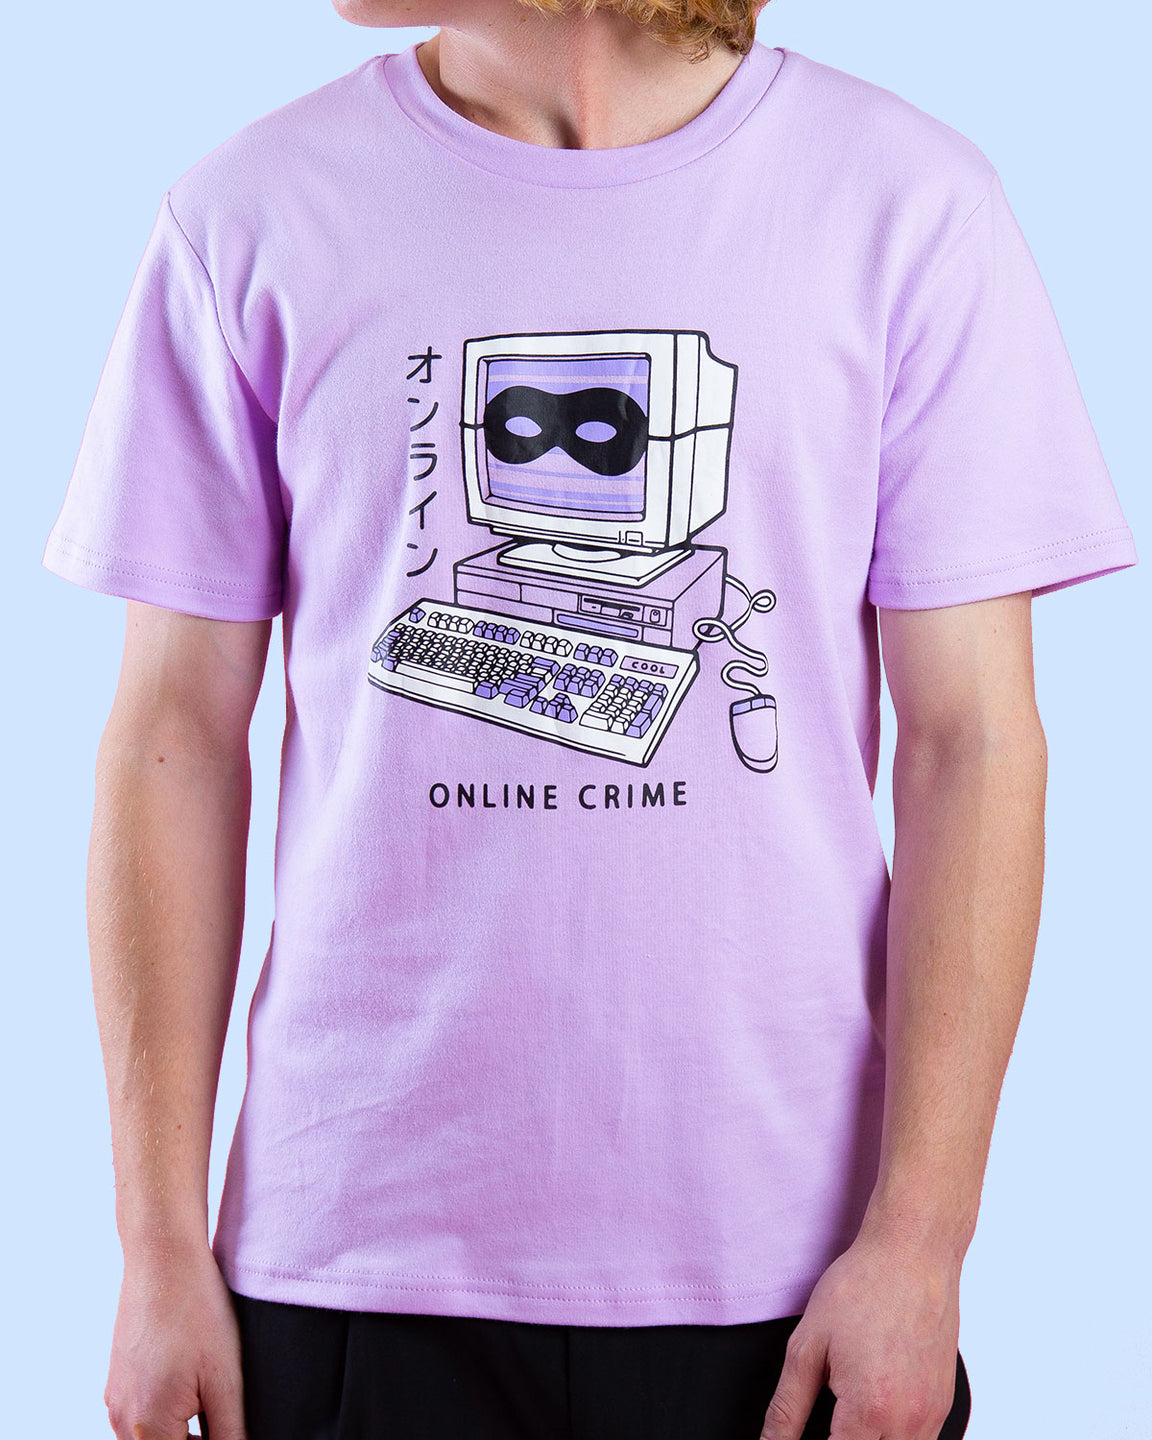 The Online Crime Tee